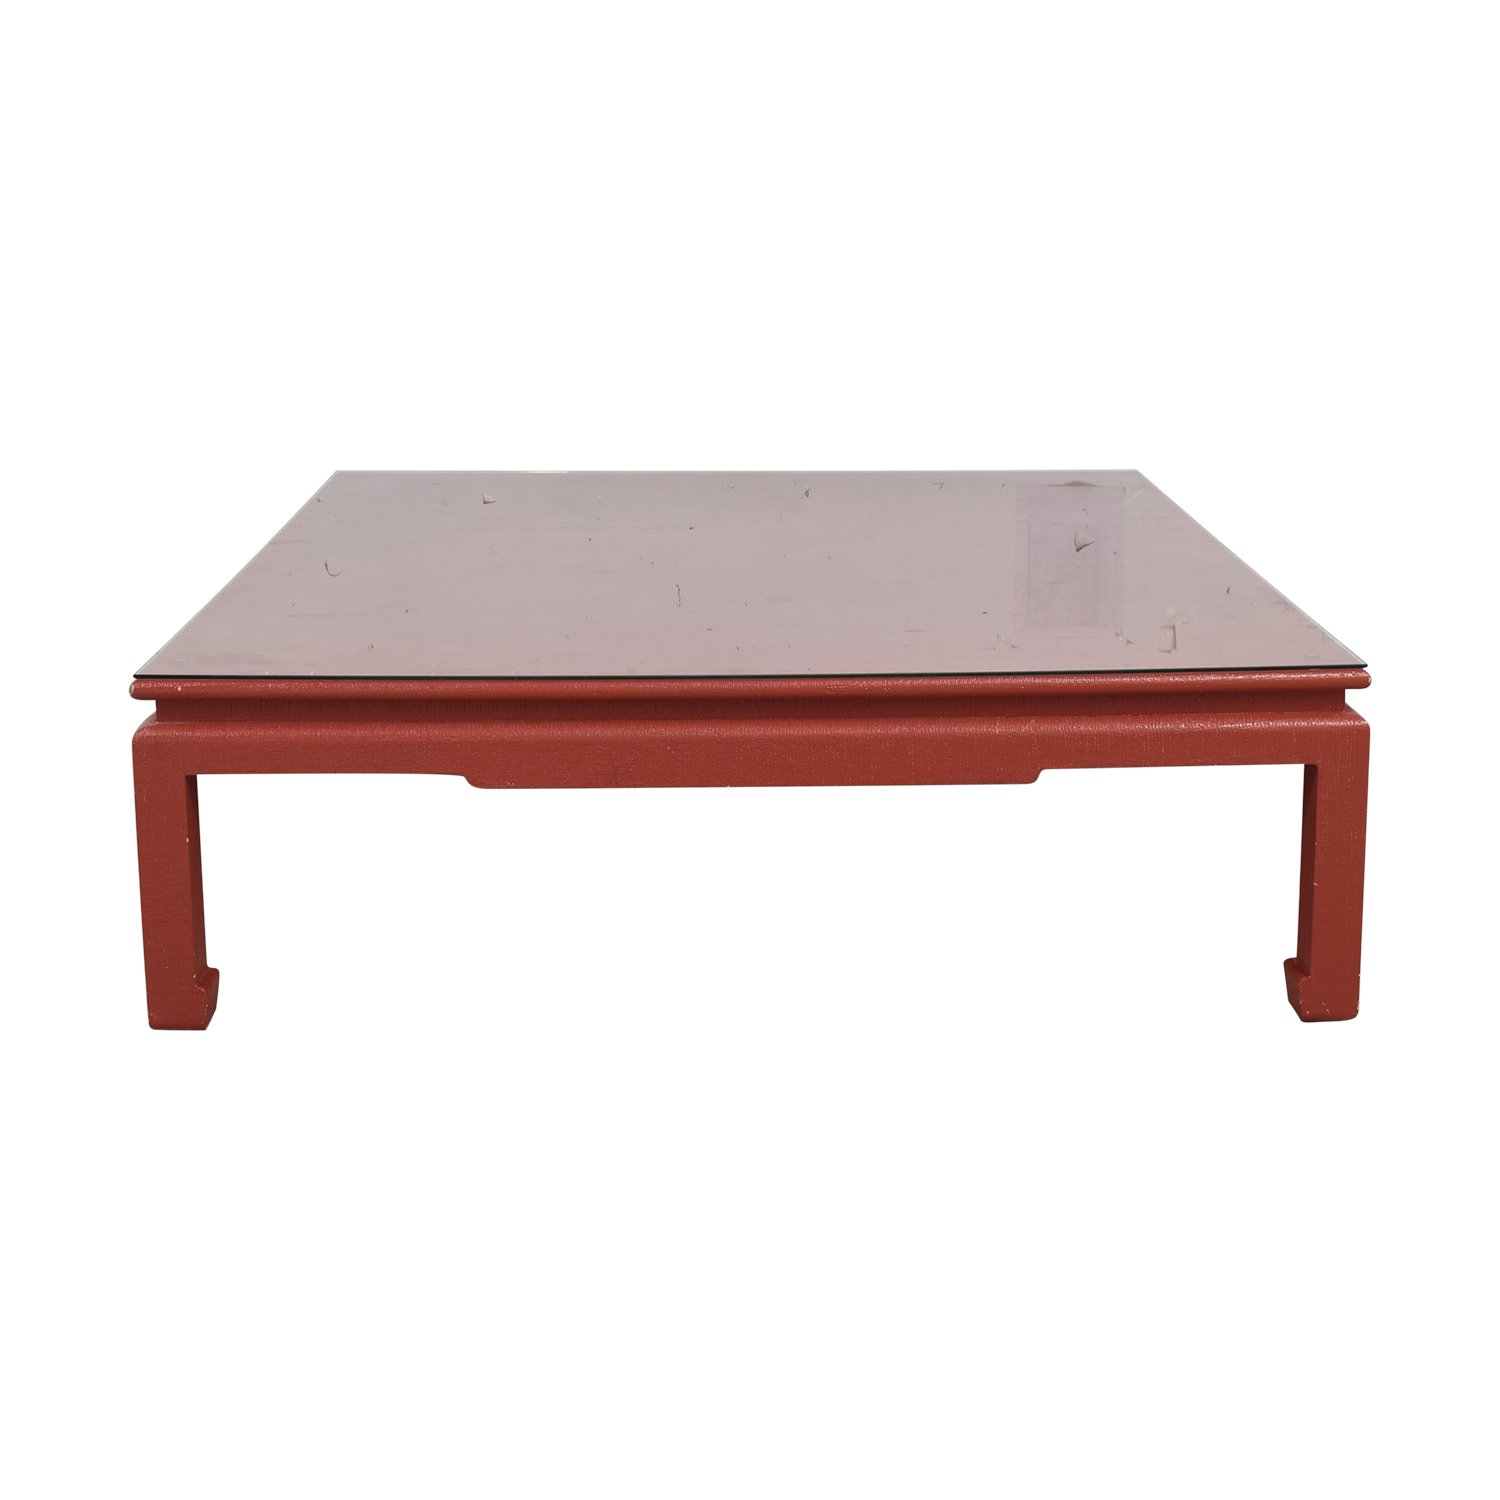 Custom Red Orange Square Coffee Table for sale